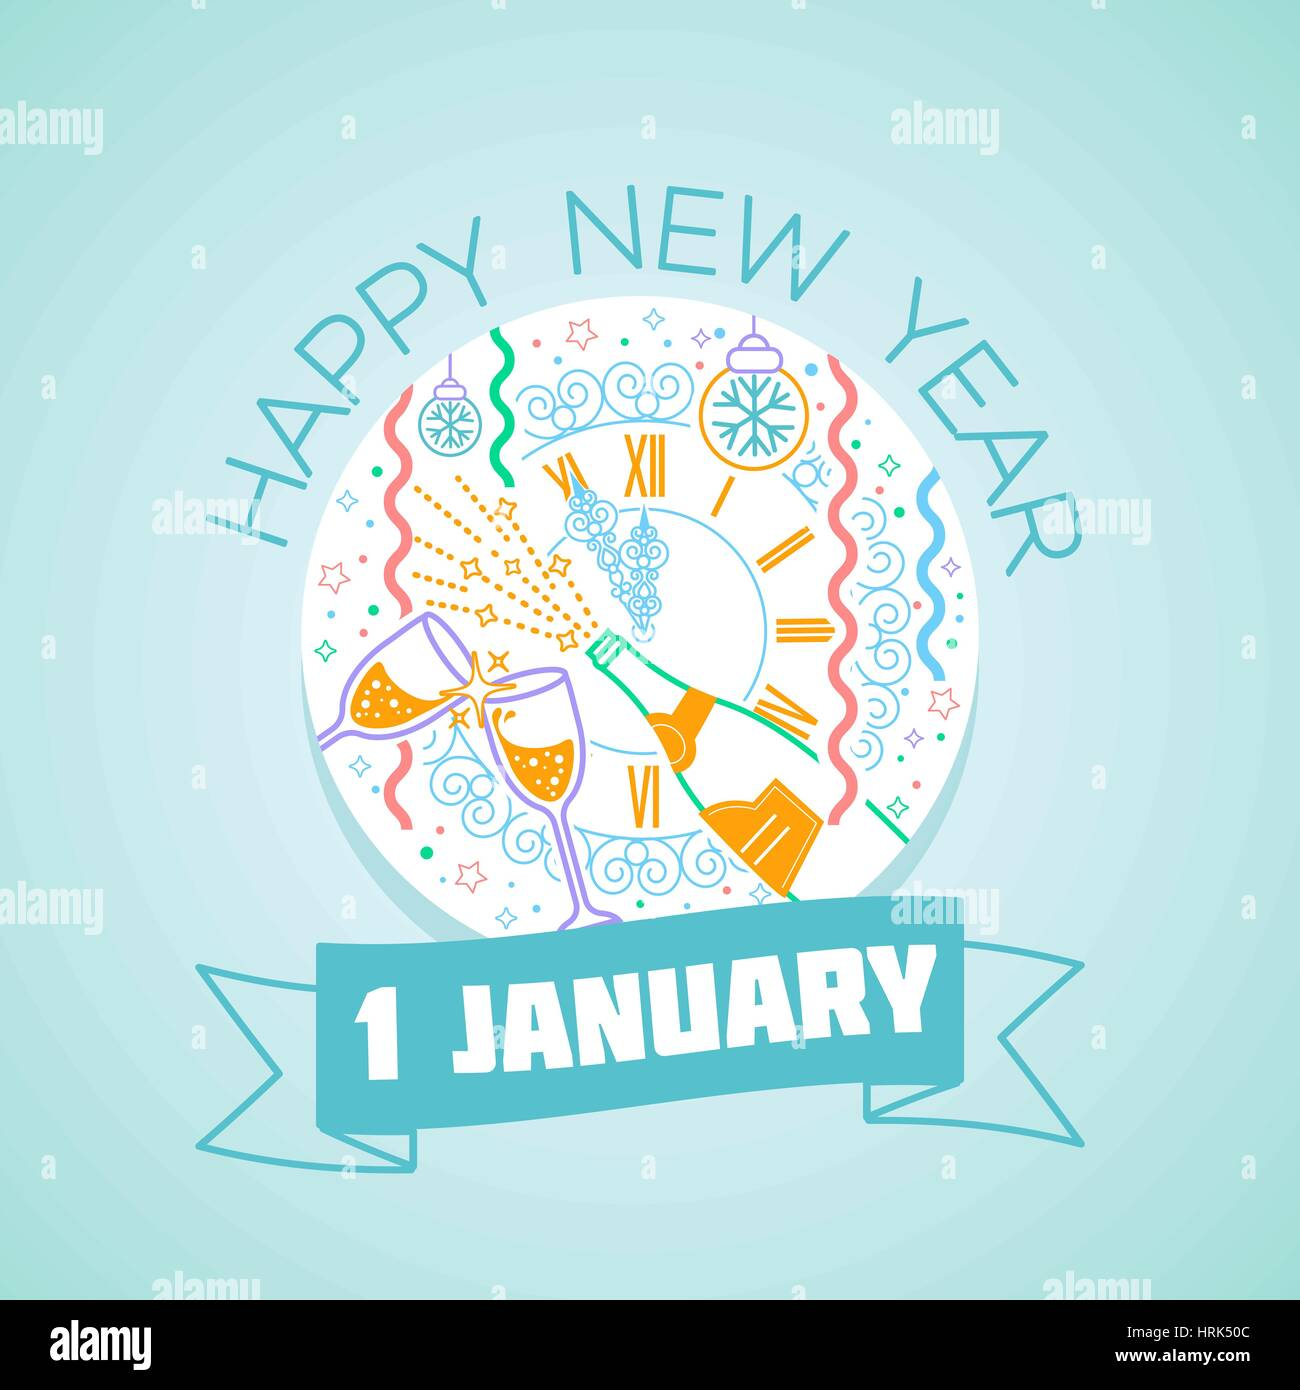 Calendar for each day on january 1 greeting card holiday happy calendar for each day on january 1 greeting card holiday happy new year icon in the linear style kristyandbryce Images